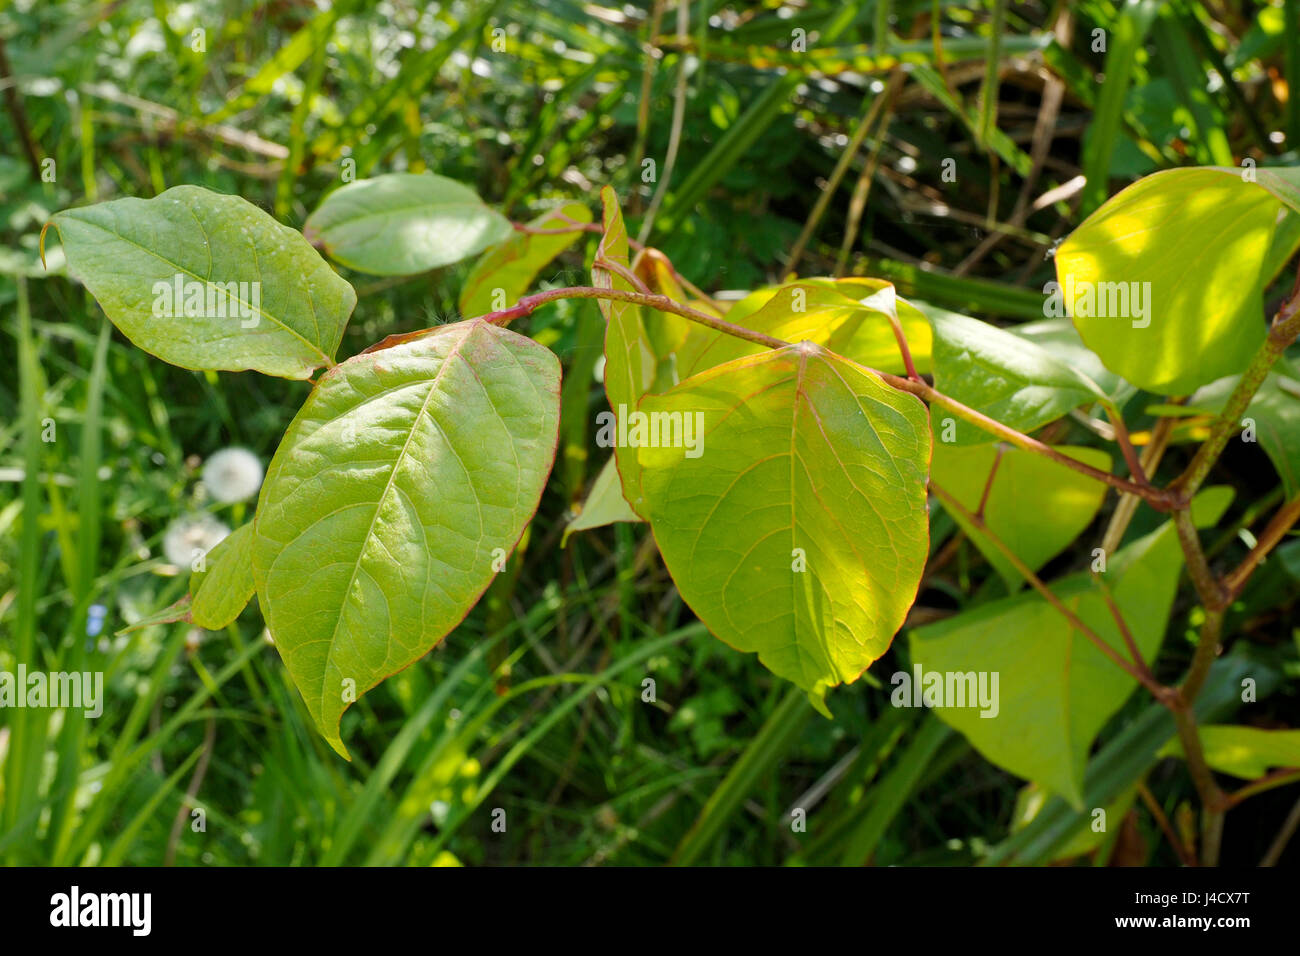 Der Magische Findhorn Garten Leaves Stem Japanese Knotweed Plant Stockfotos And Leaves